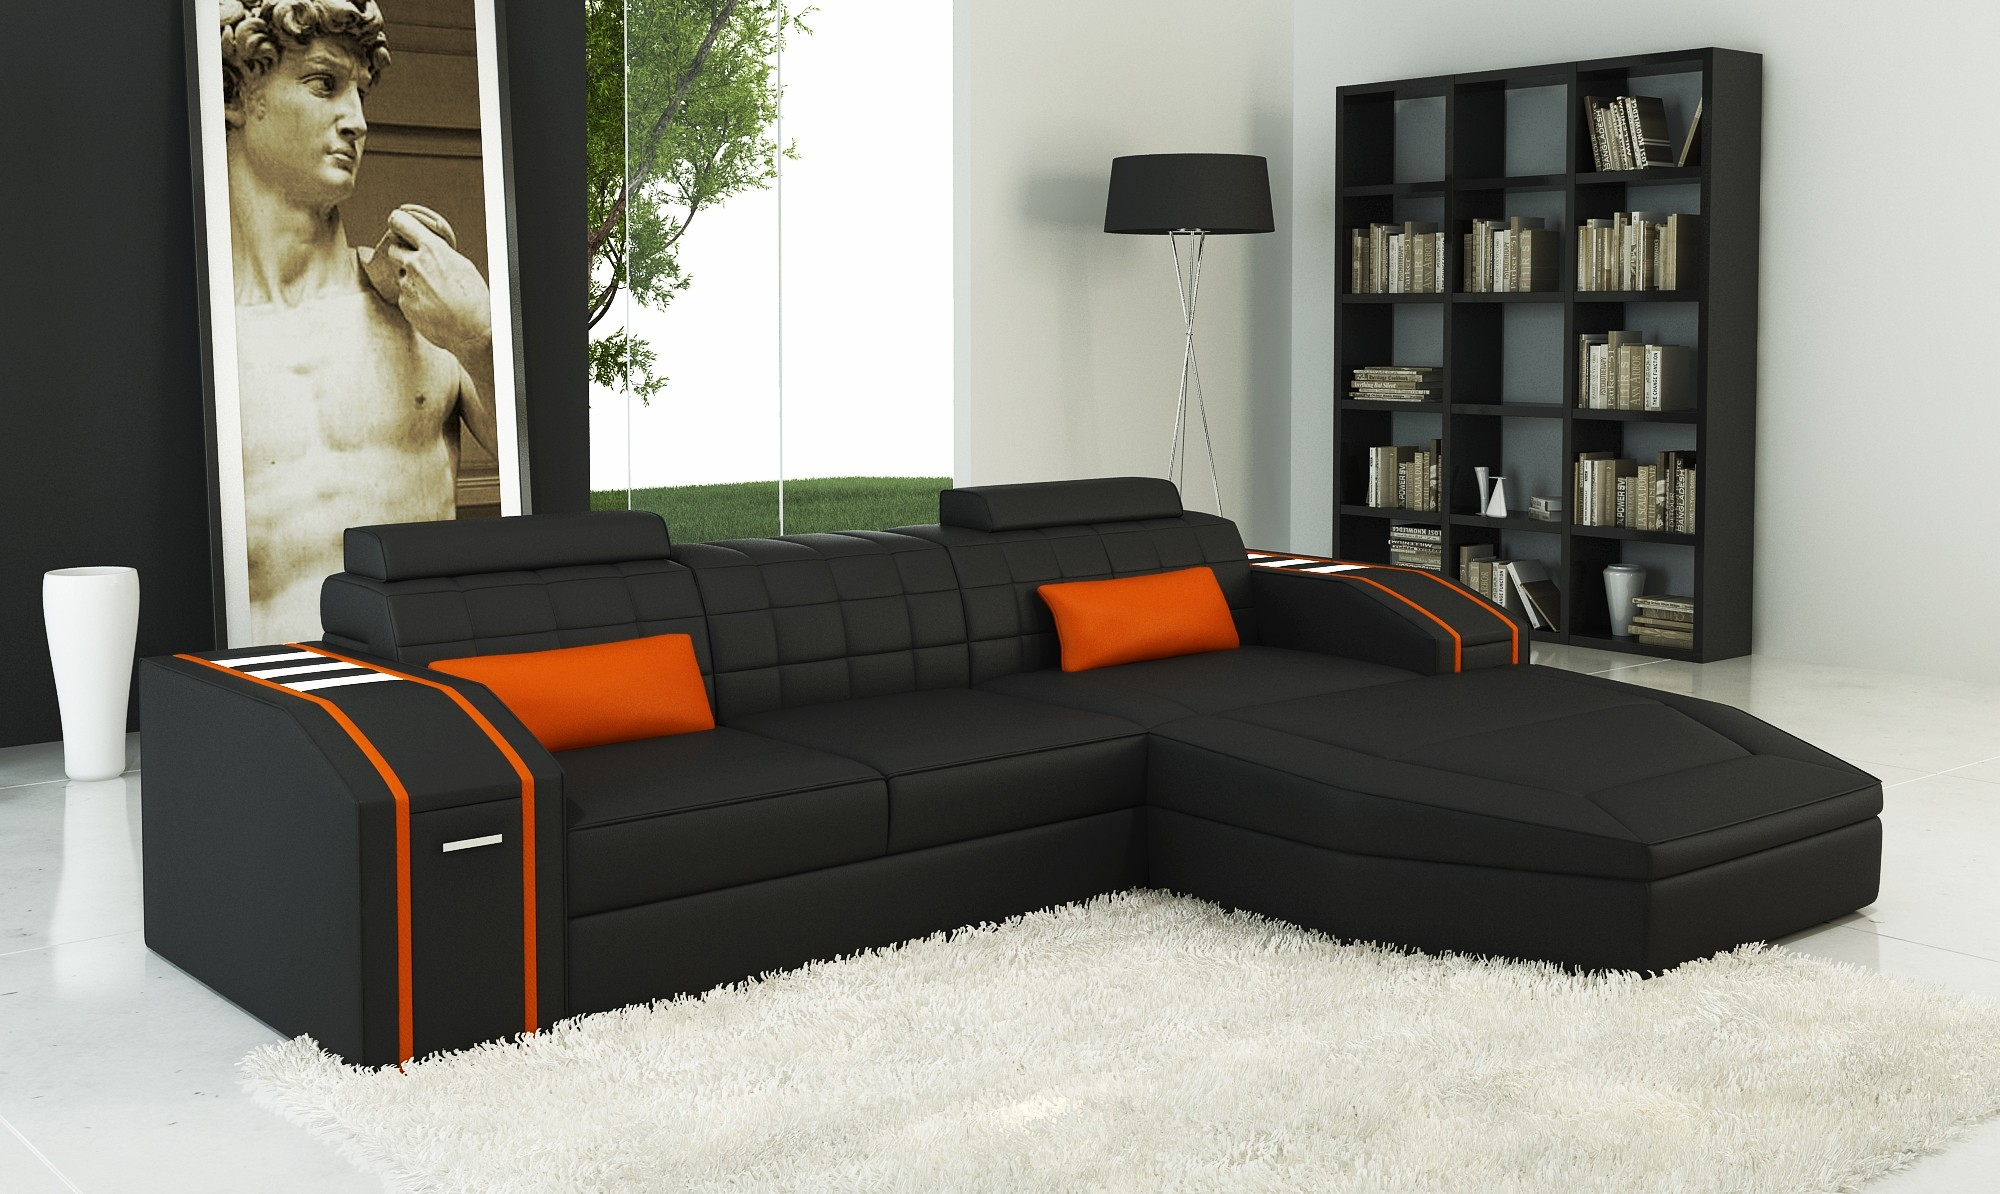 Orange Sofa Design Ideas Orange Living Room Chairs Orange Sofa Regarding Orange Sofa Chairs (Image 12 of 15)